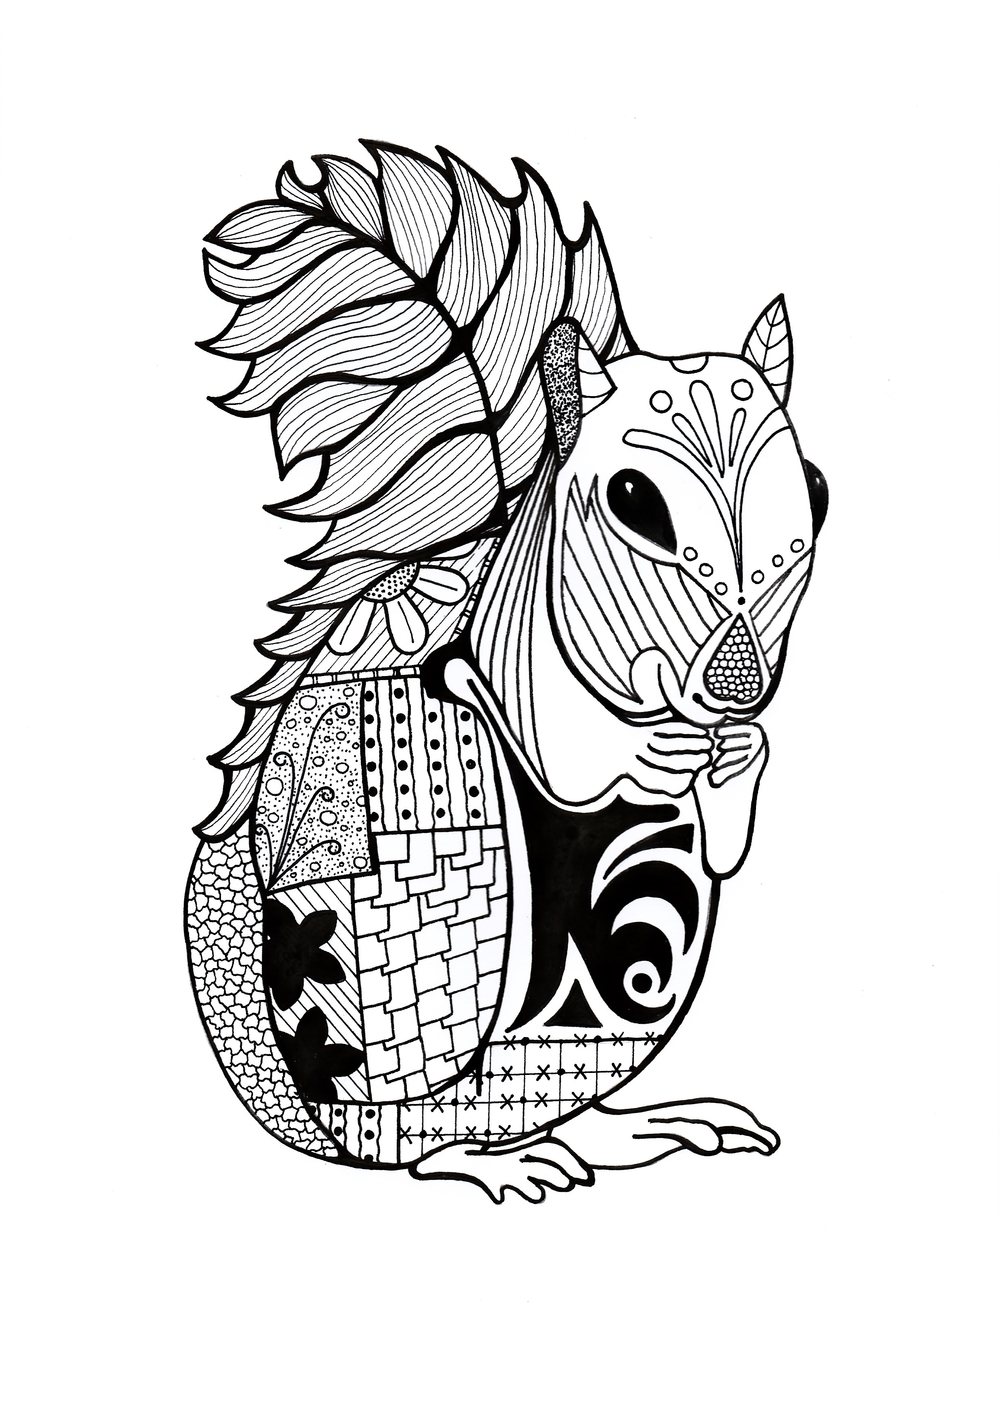 Intricate Squirrel Adult Coloring Page | FaveCrafts.com | printable colouring pages for adults animals